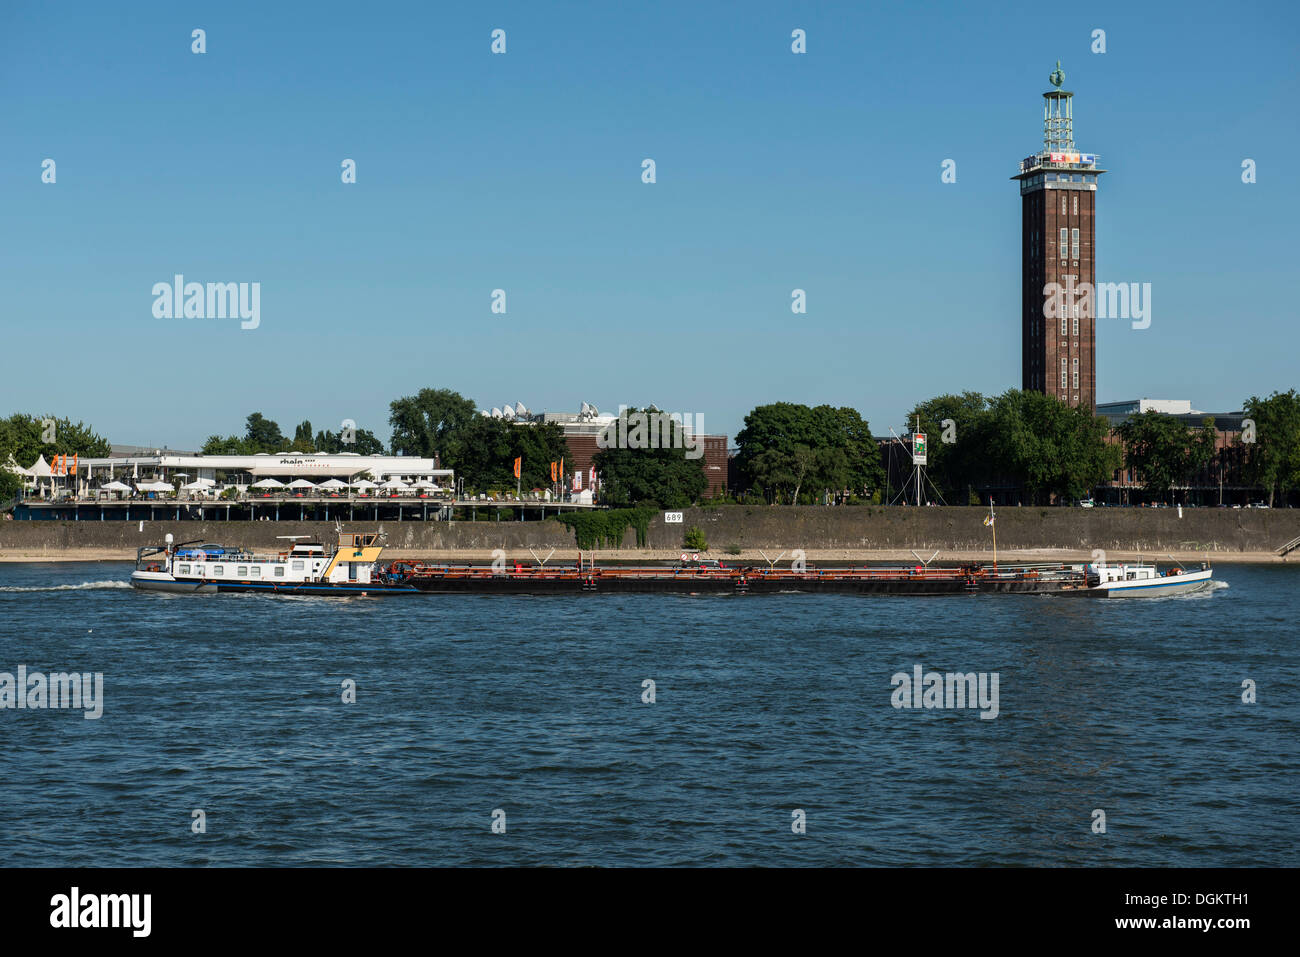 Benny, an inland vessel traveling up the Rhine river, Tanzbrunnen venue and the historic Messeturm tower at the - Stock Image